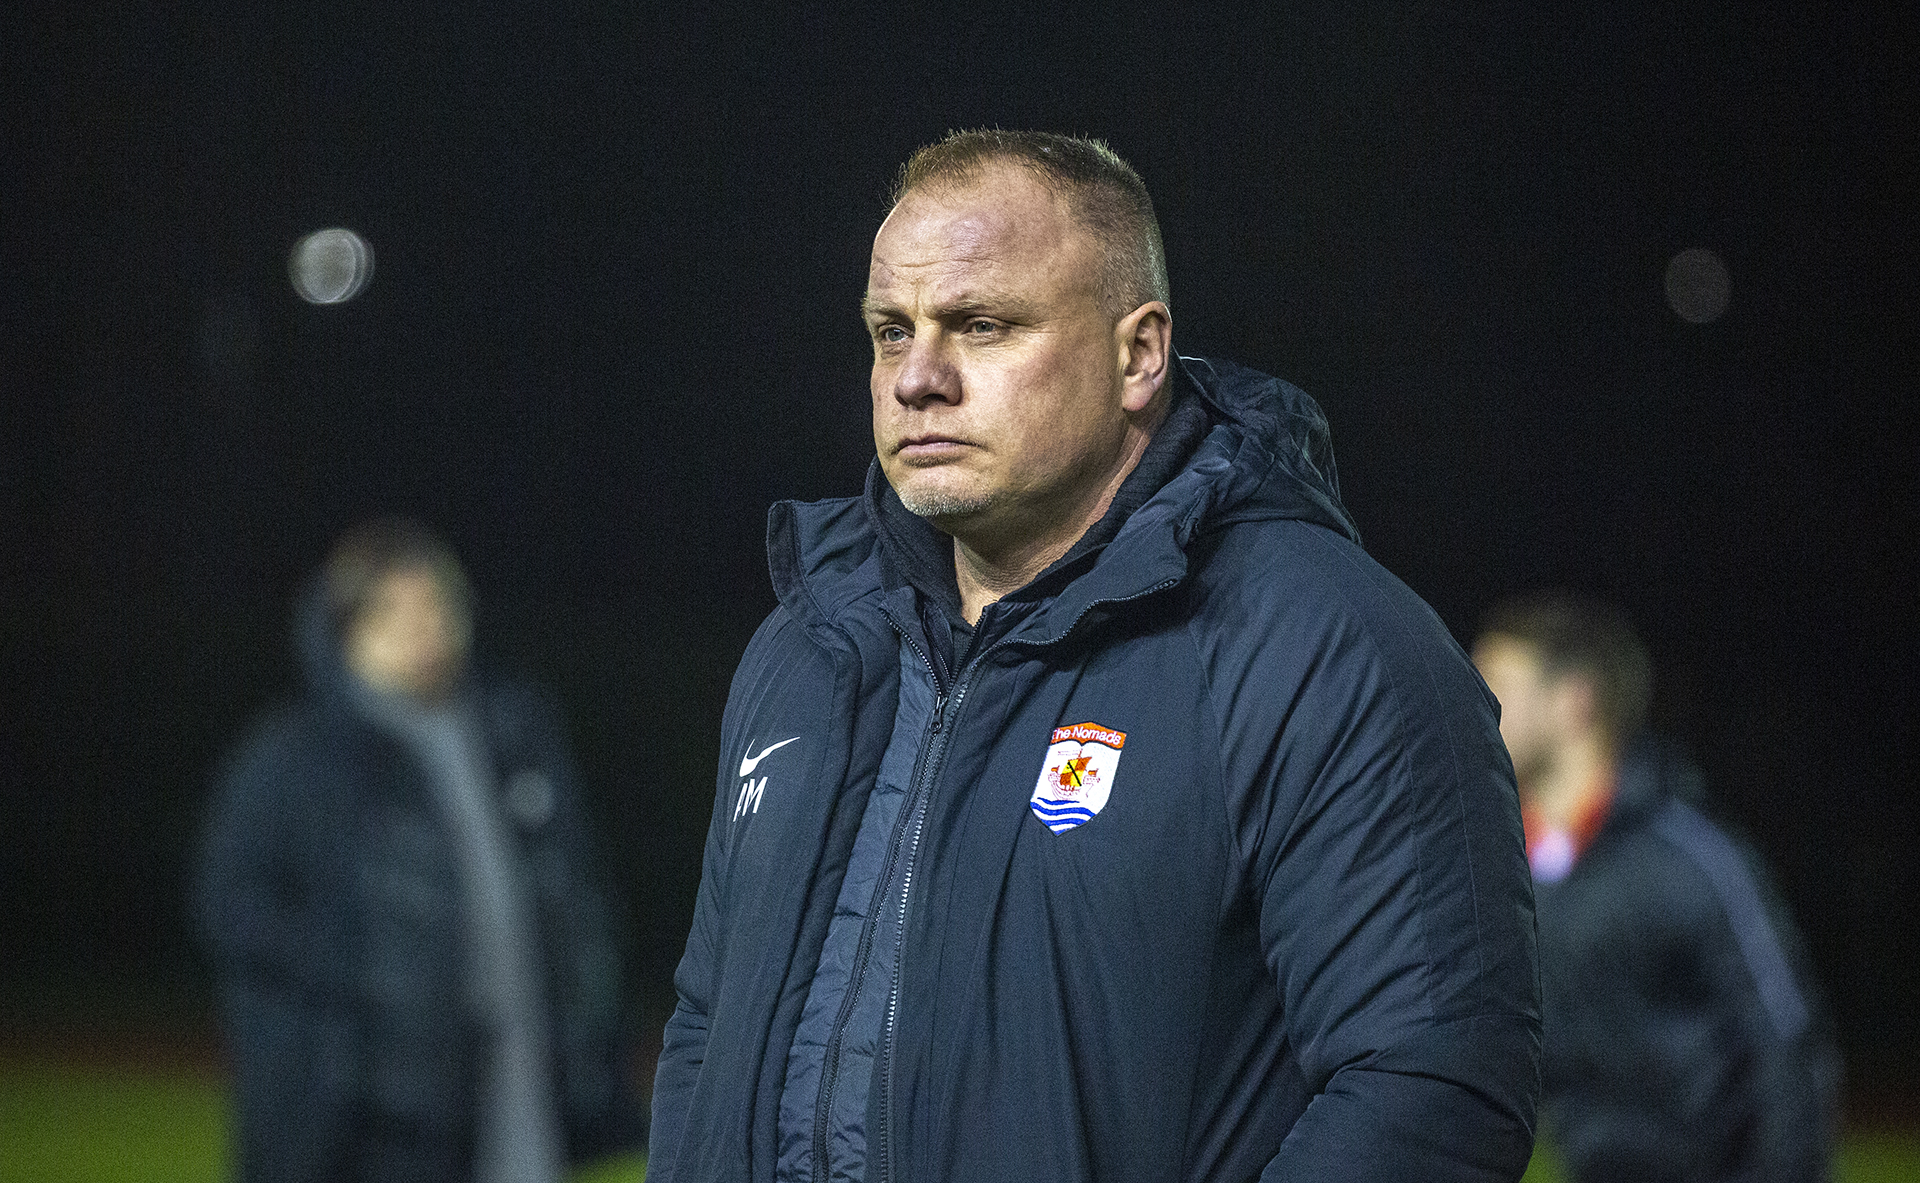 Andy Morrison looks forward to the visit of TNS | © NCM Media